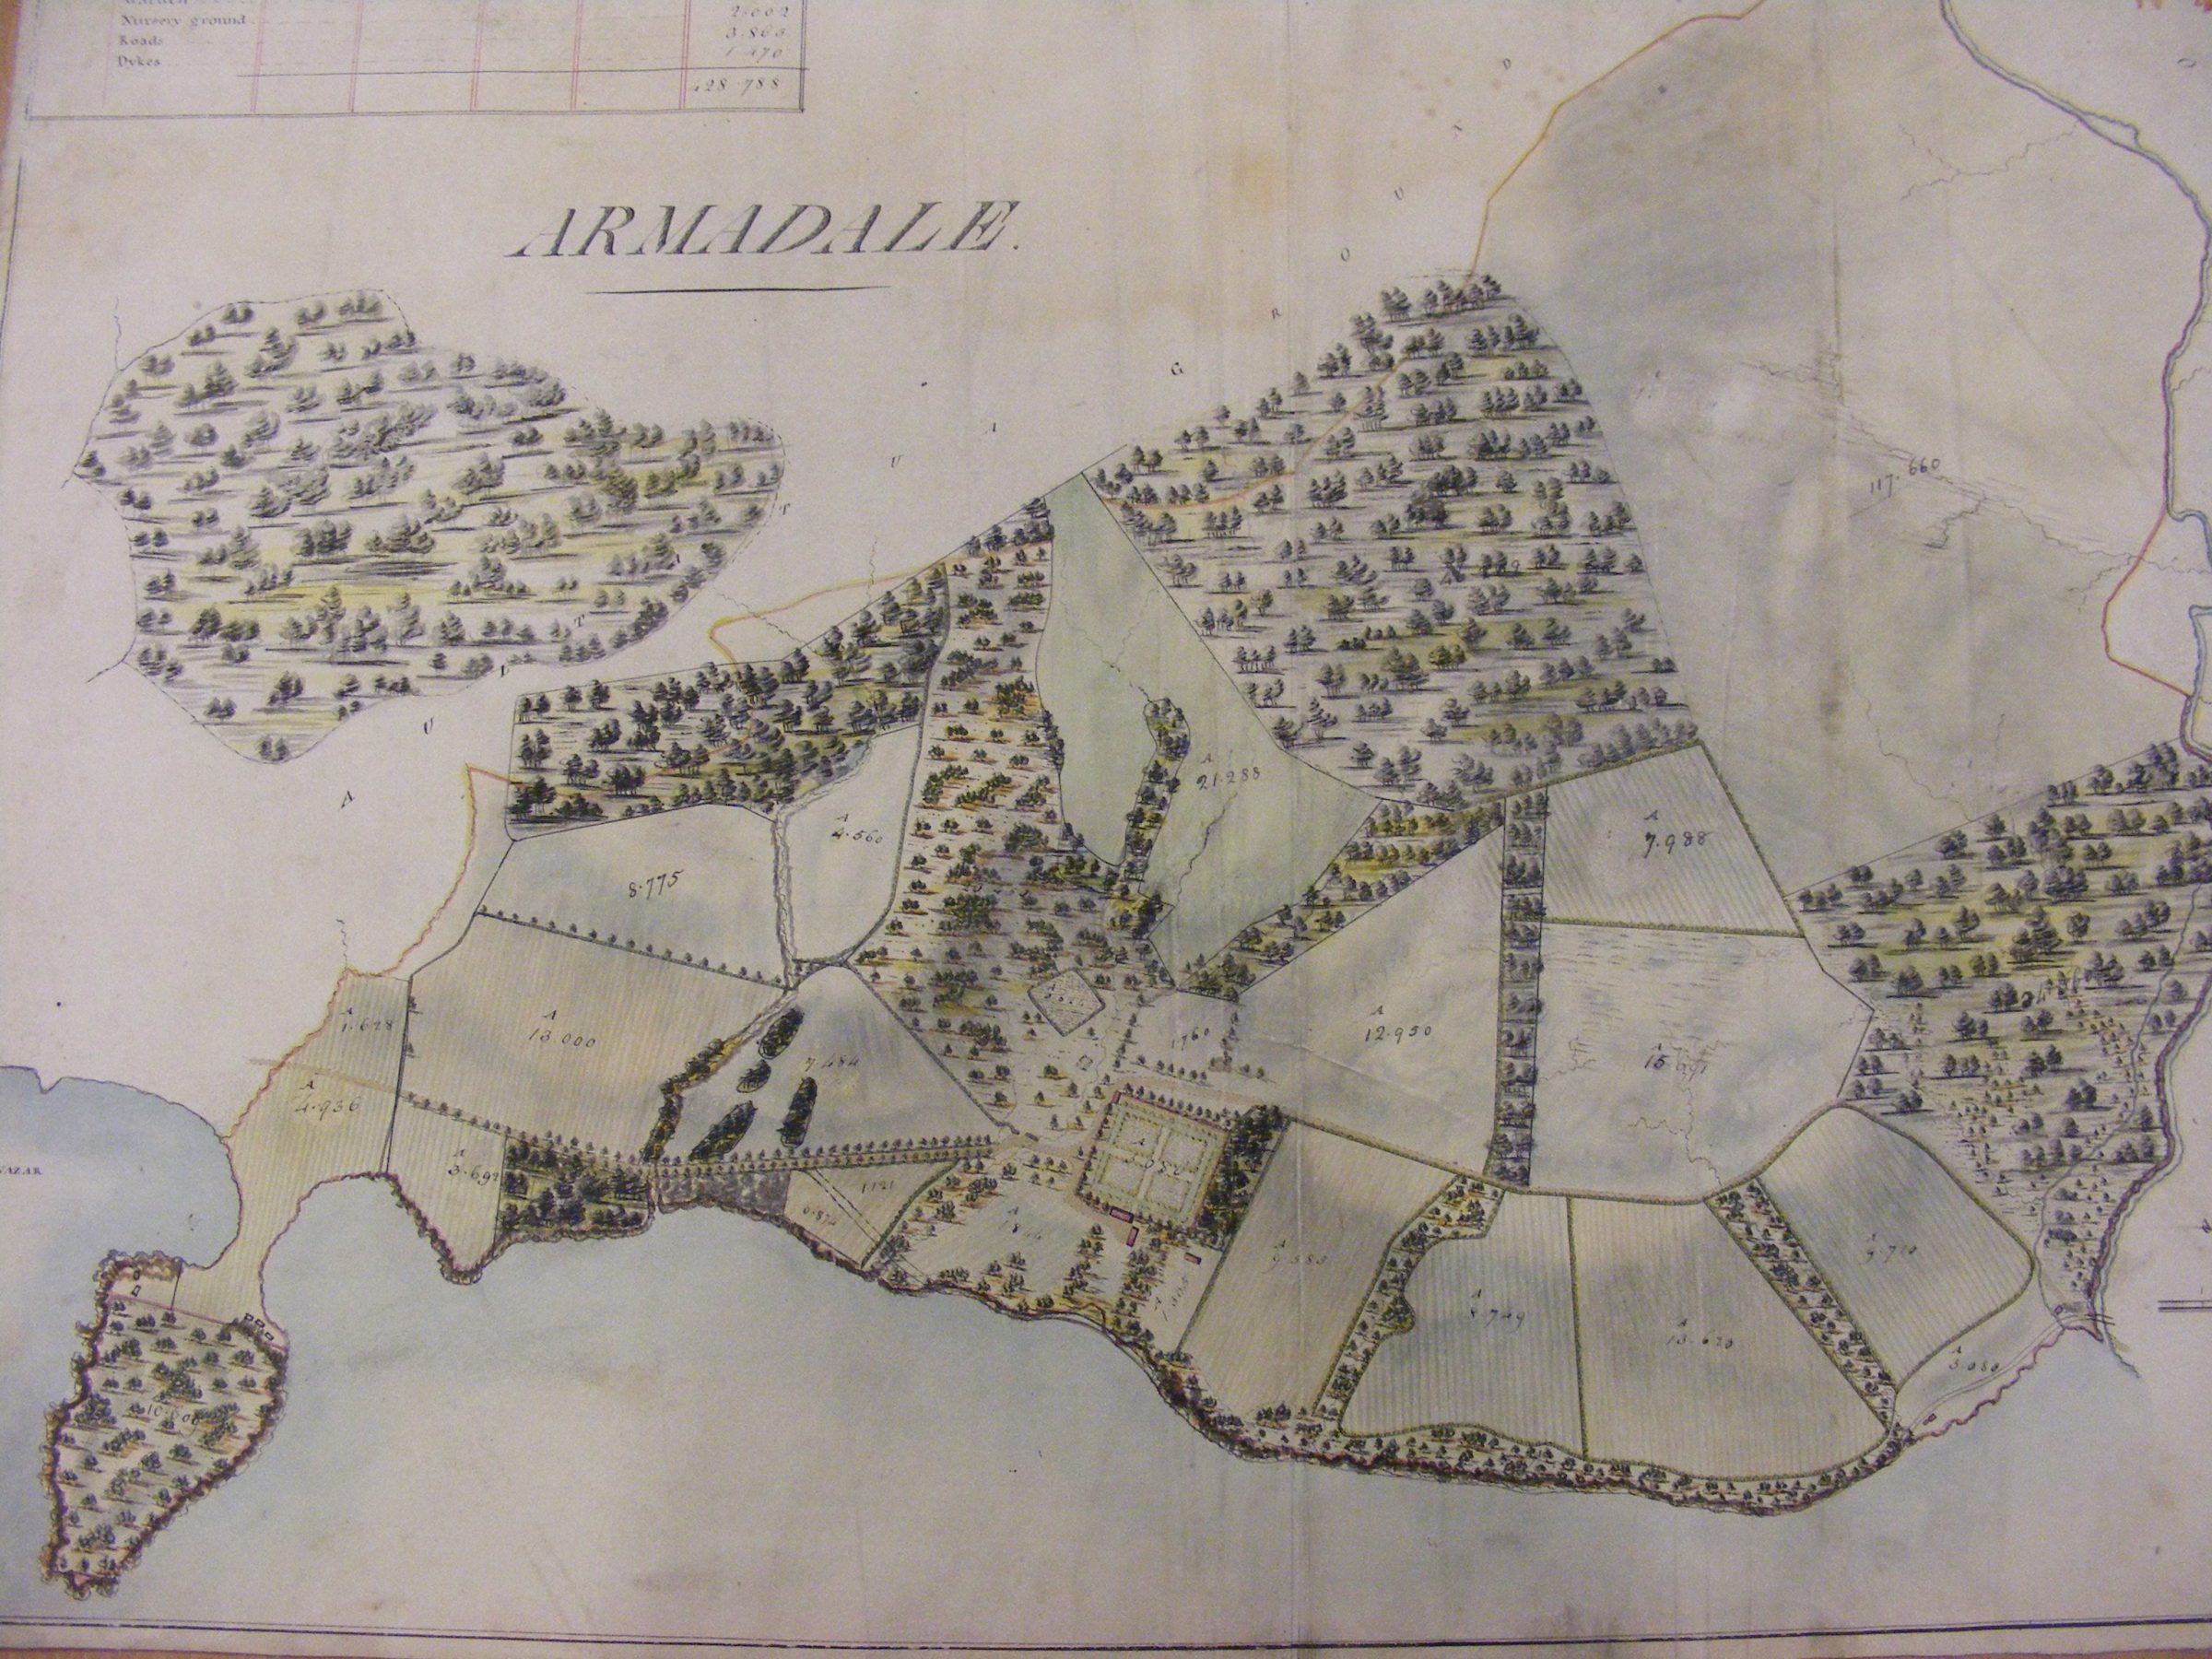 Old Armadale map from the Archive